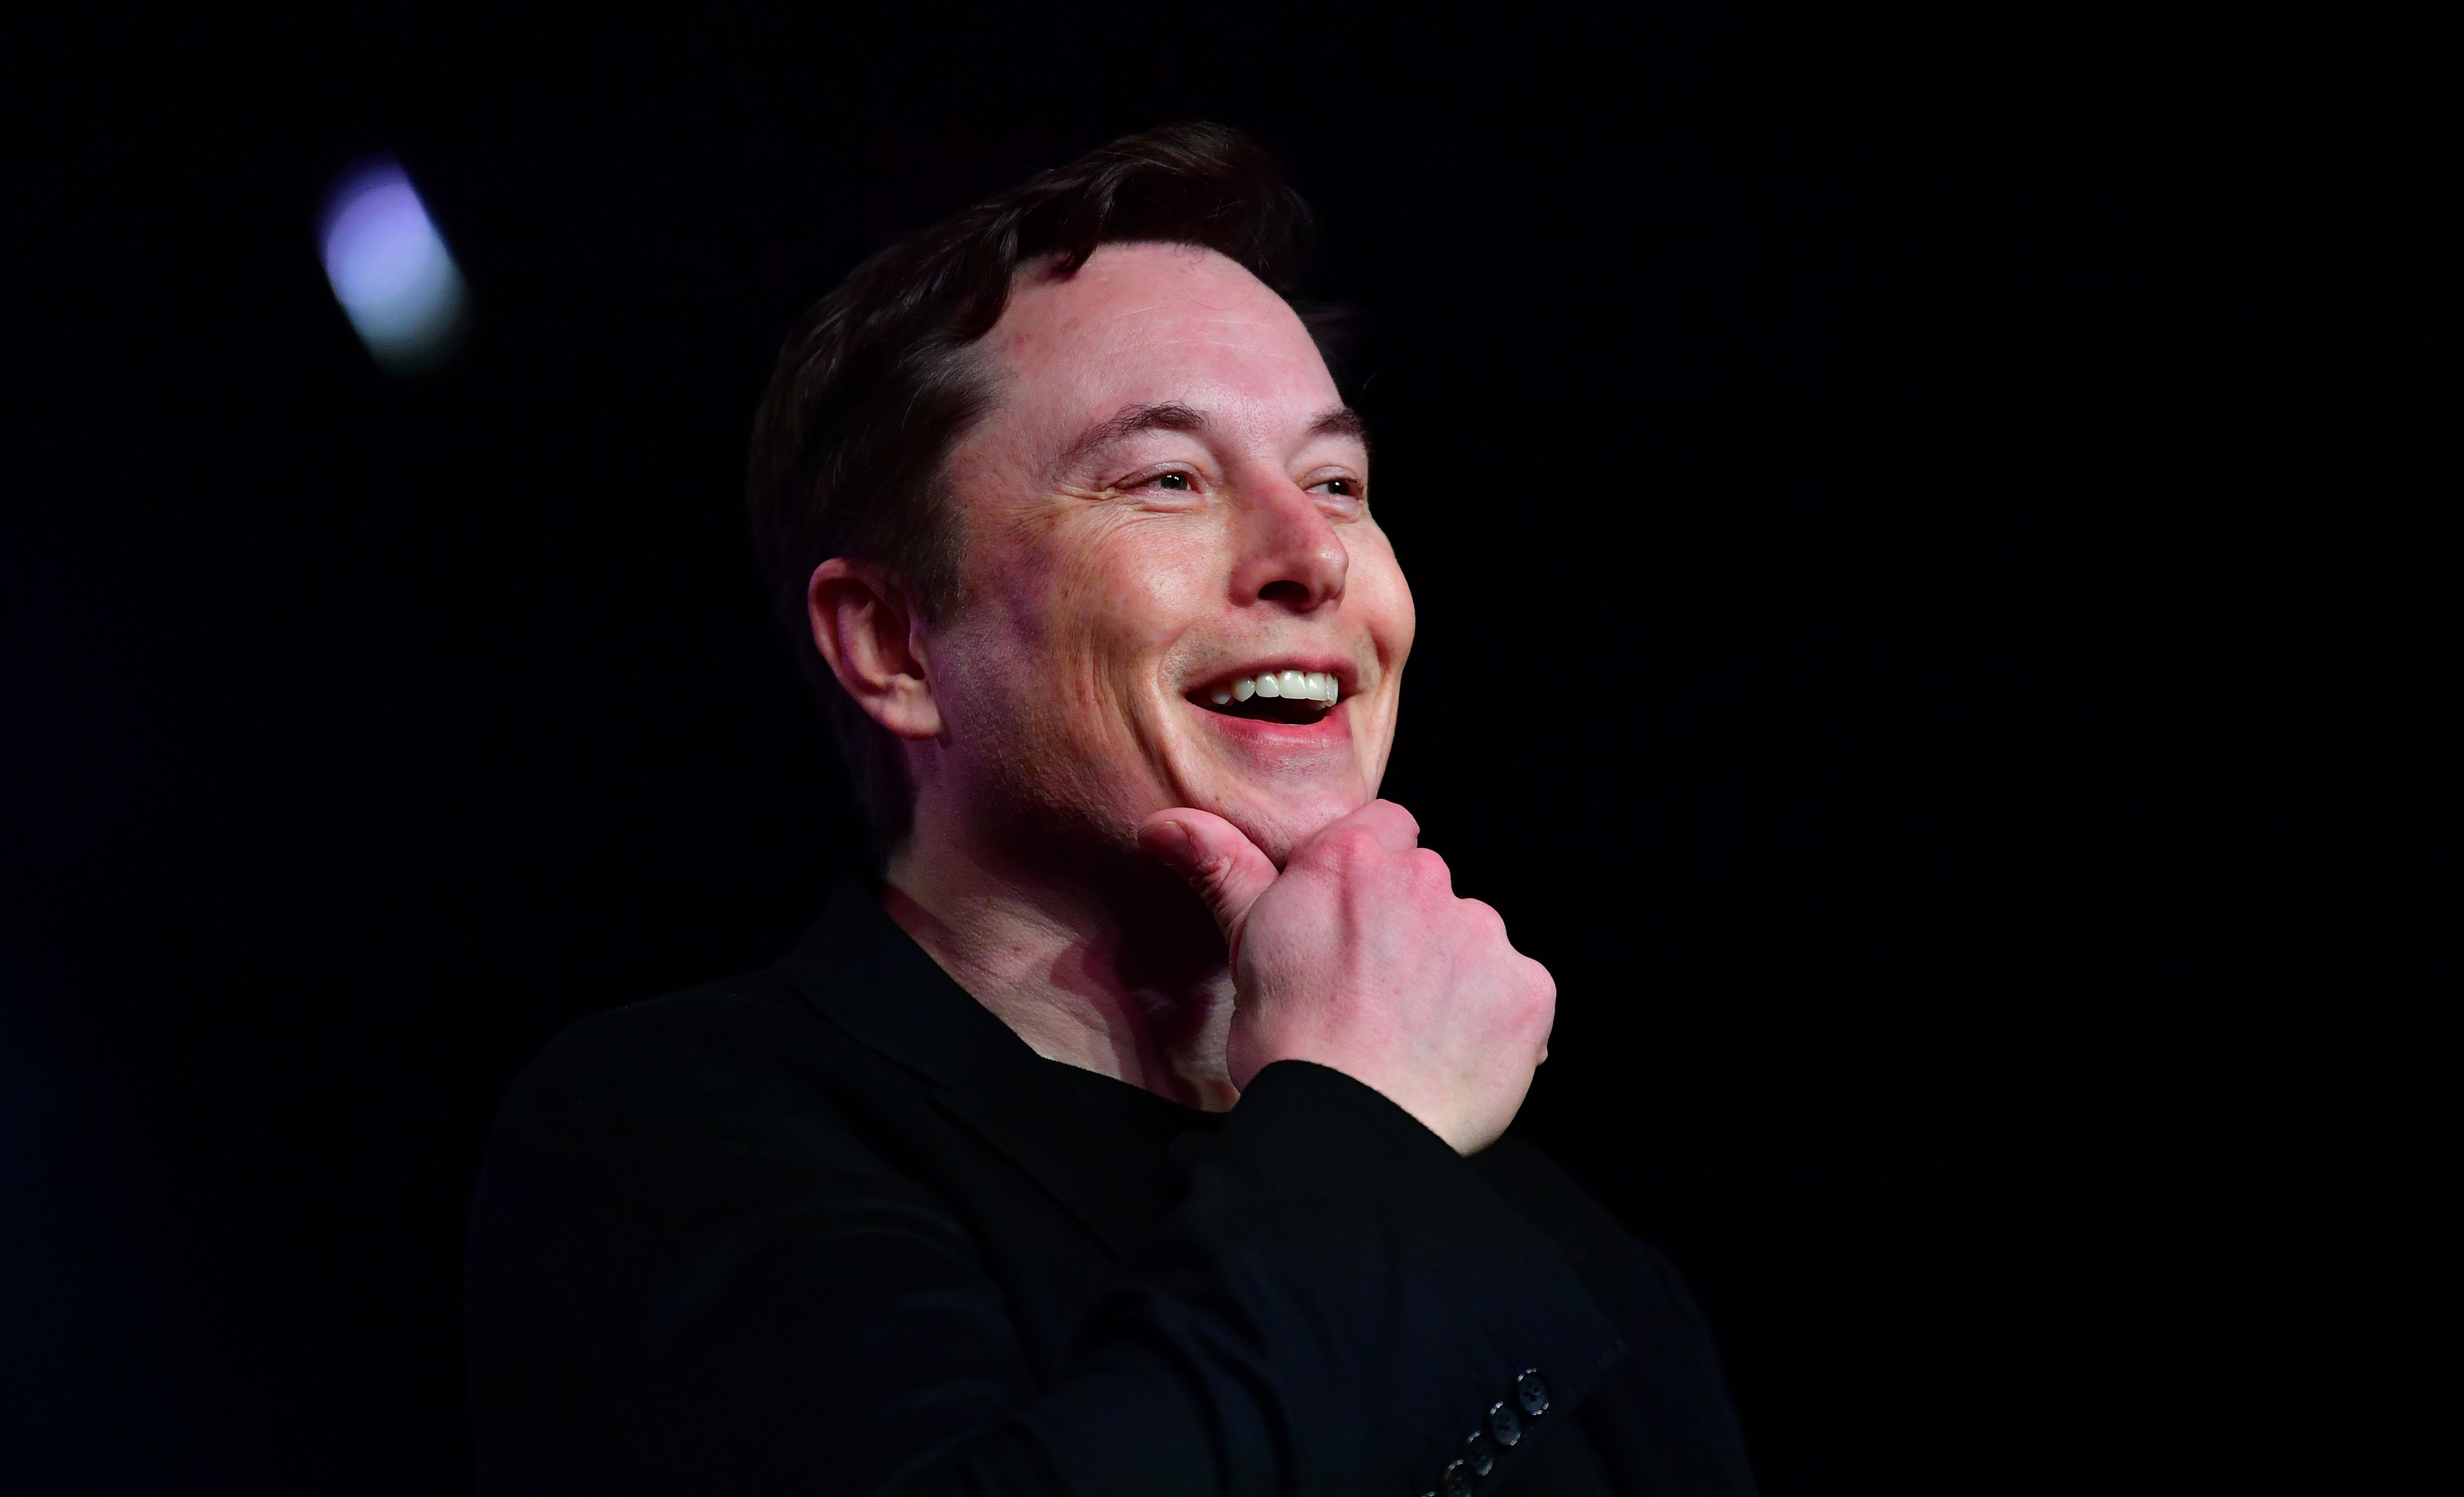 Elon Musk speaks during the unveiling of the new Tesla Model Y in Hawthorne, California on March 14, 2019.